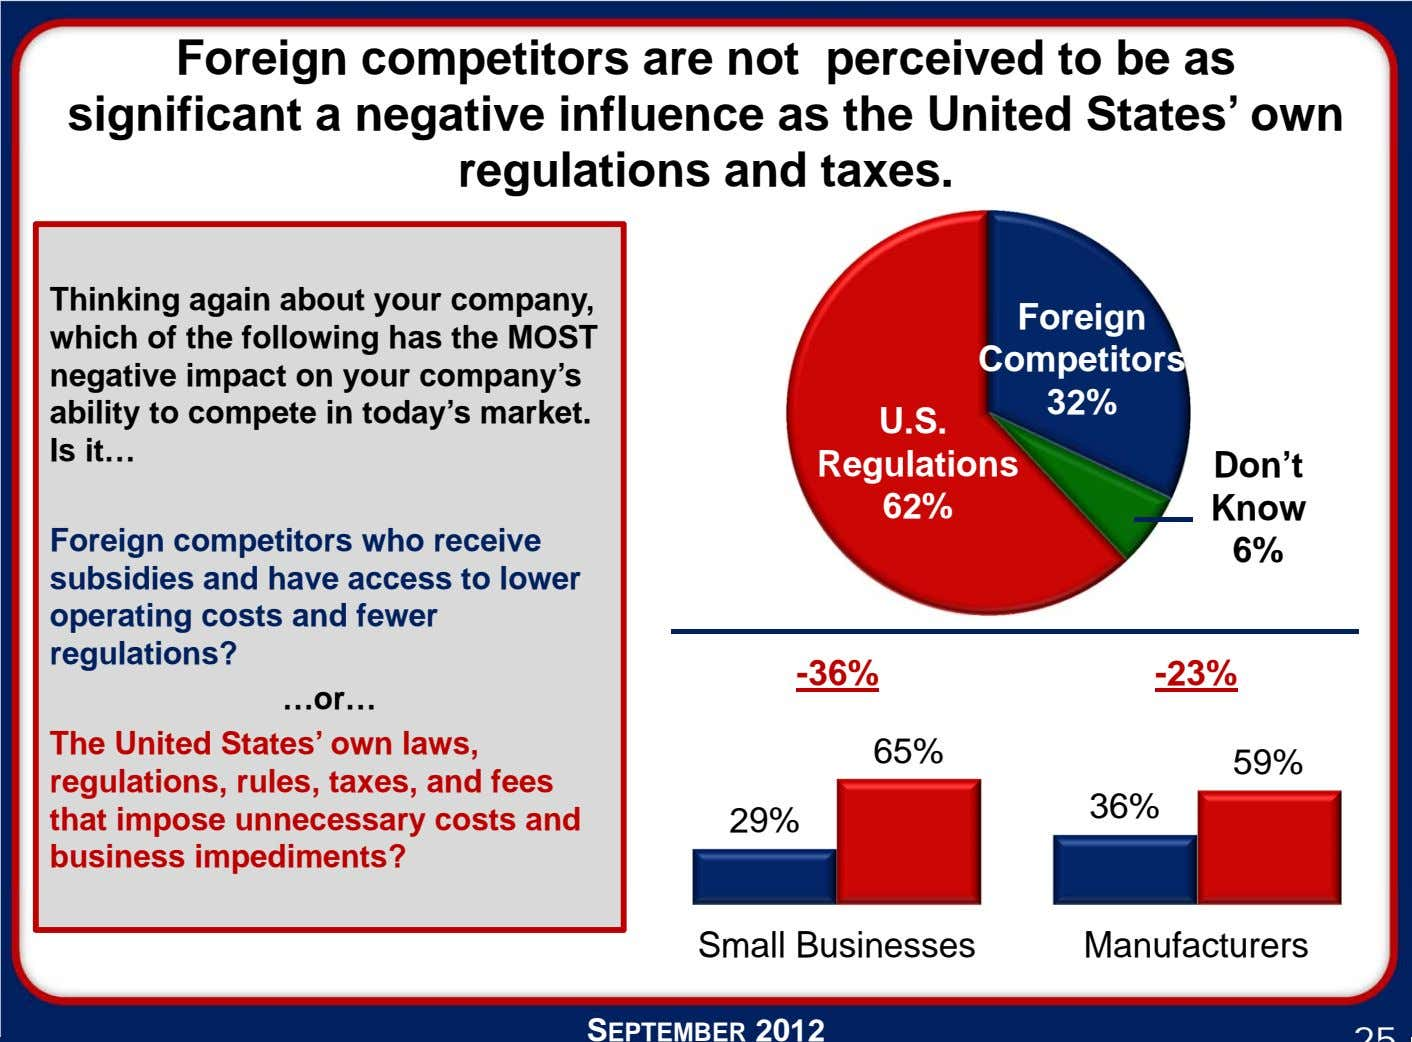 Foreign competitors are not perceived to be as significant a negative influence as the United